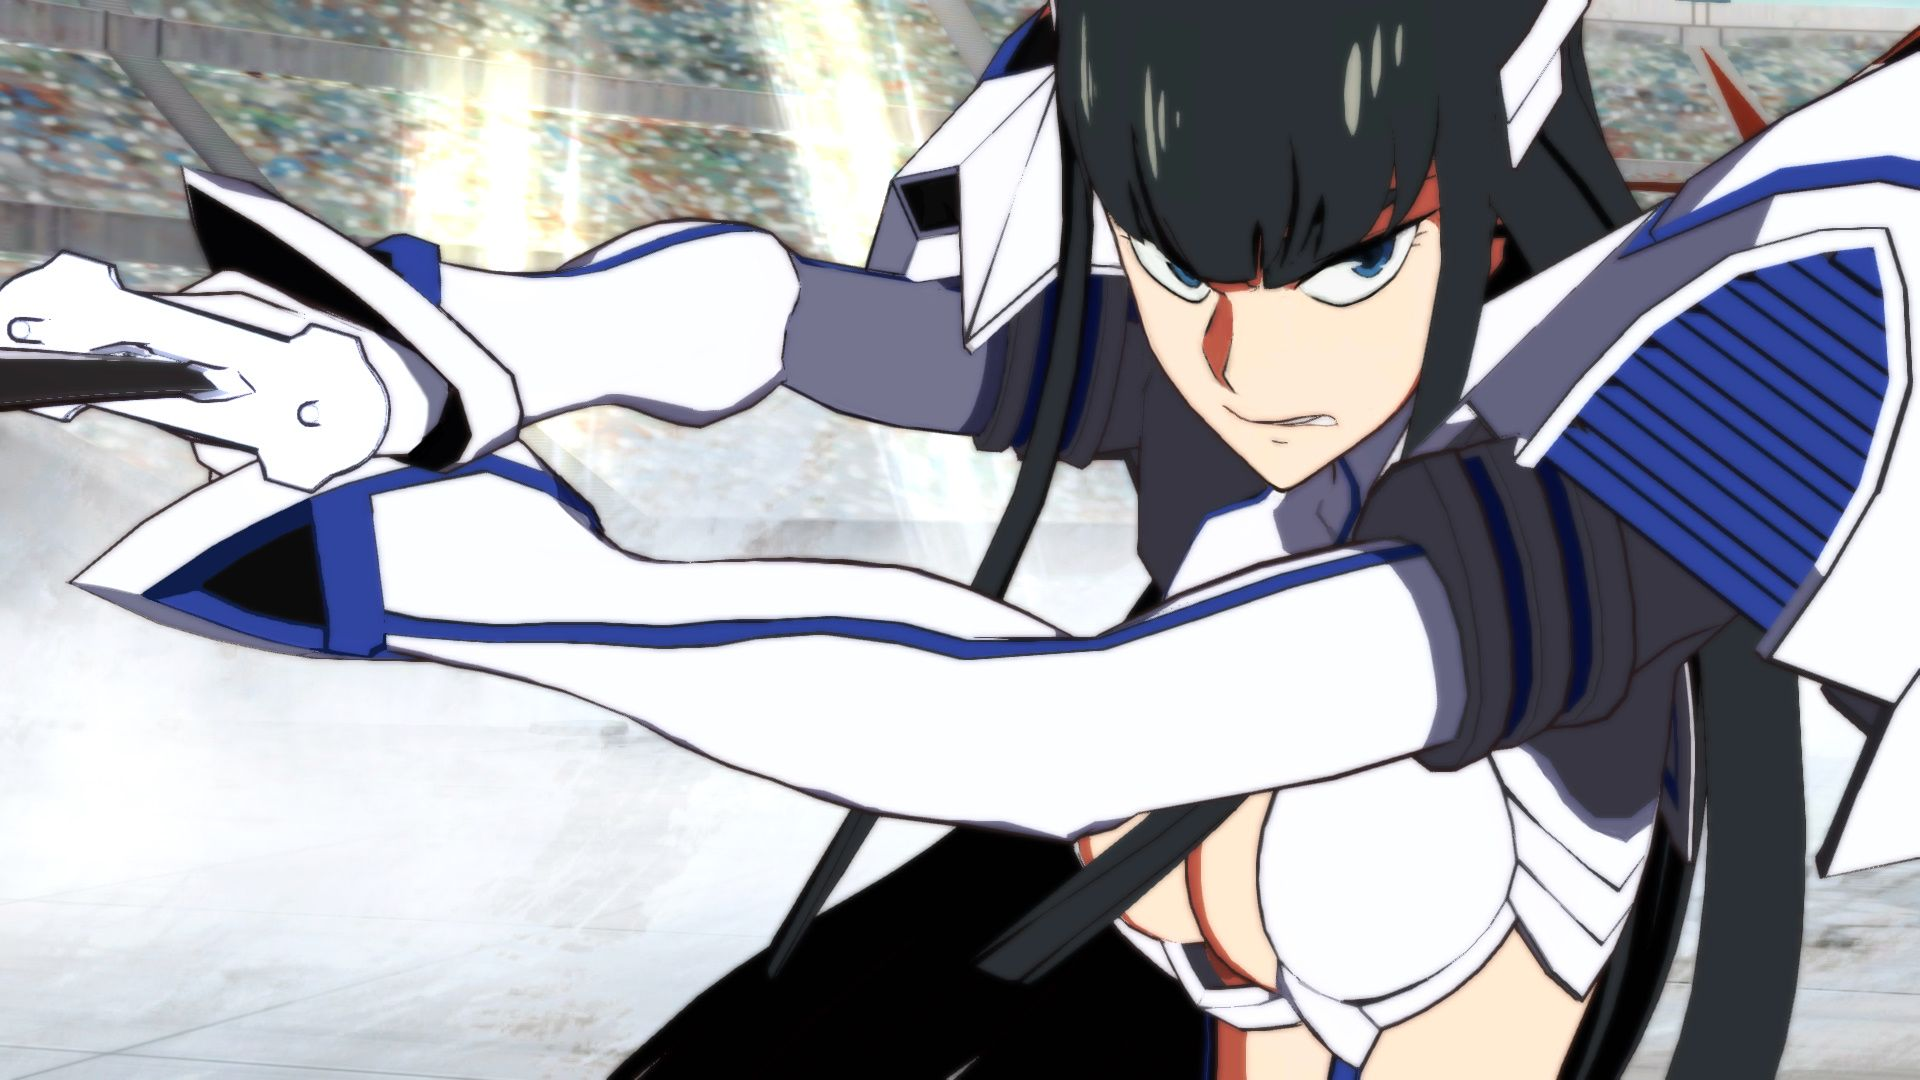 https://i1.wp.com/proximonivel.pt/wp-content/uploads/2018/06/kill-la-kill-the-game-img-02-pn.jpg